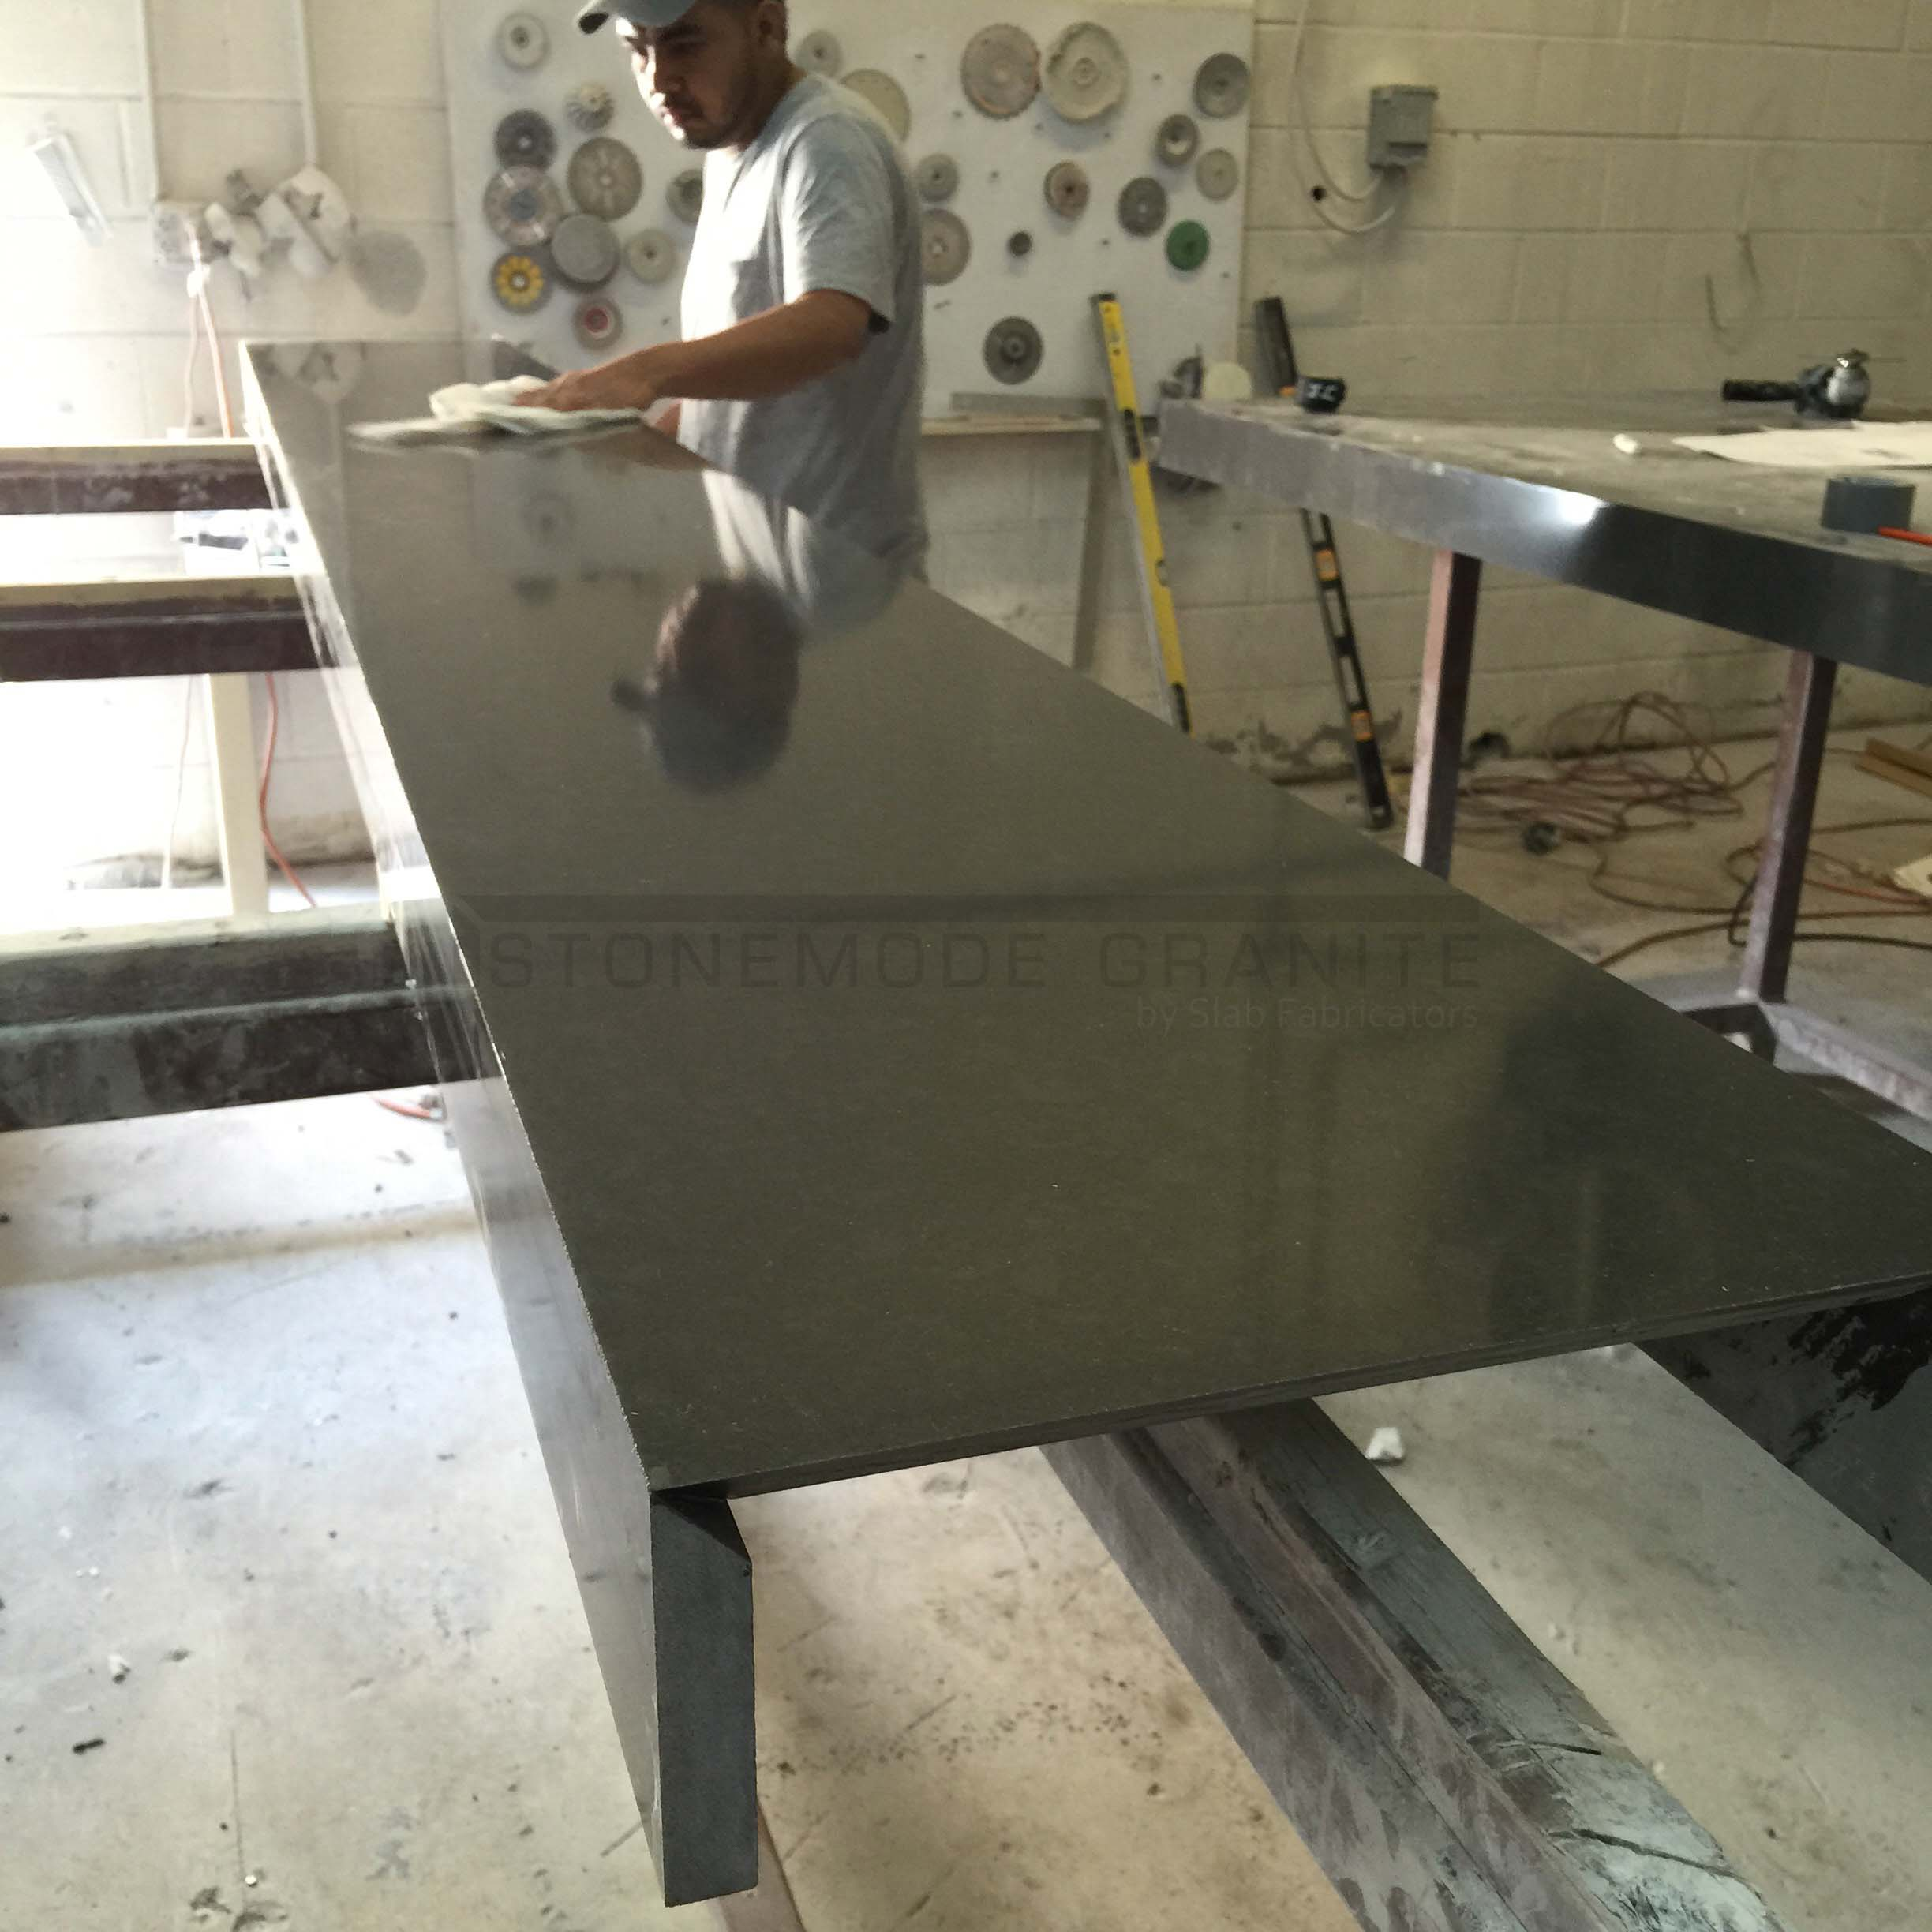 Making a Mitered Countertop